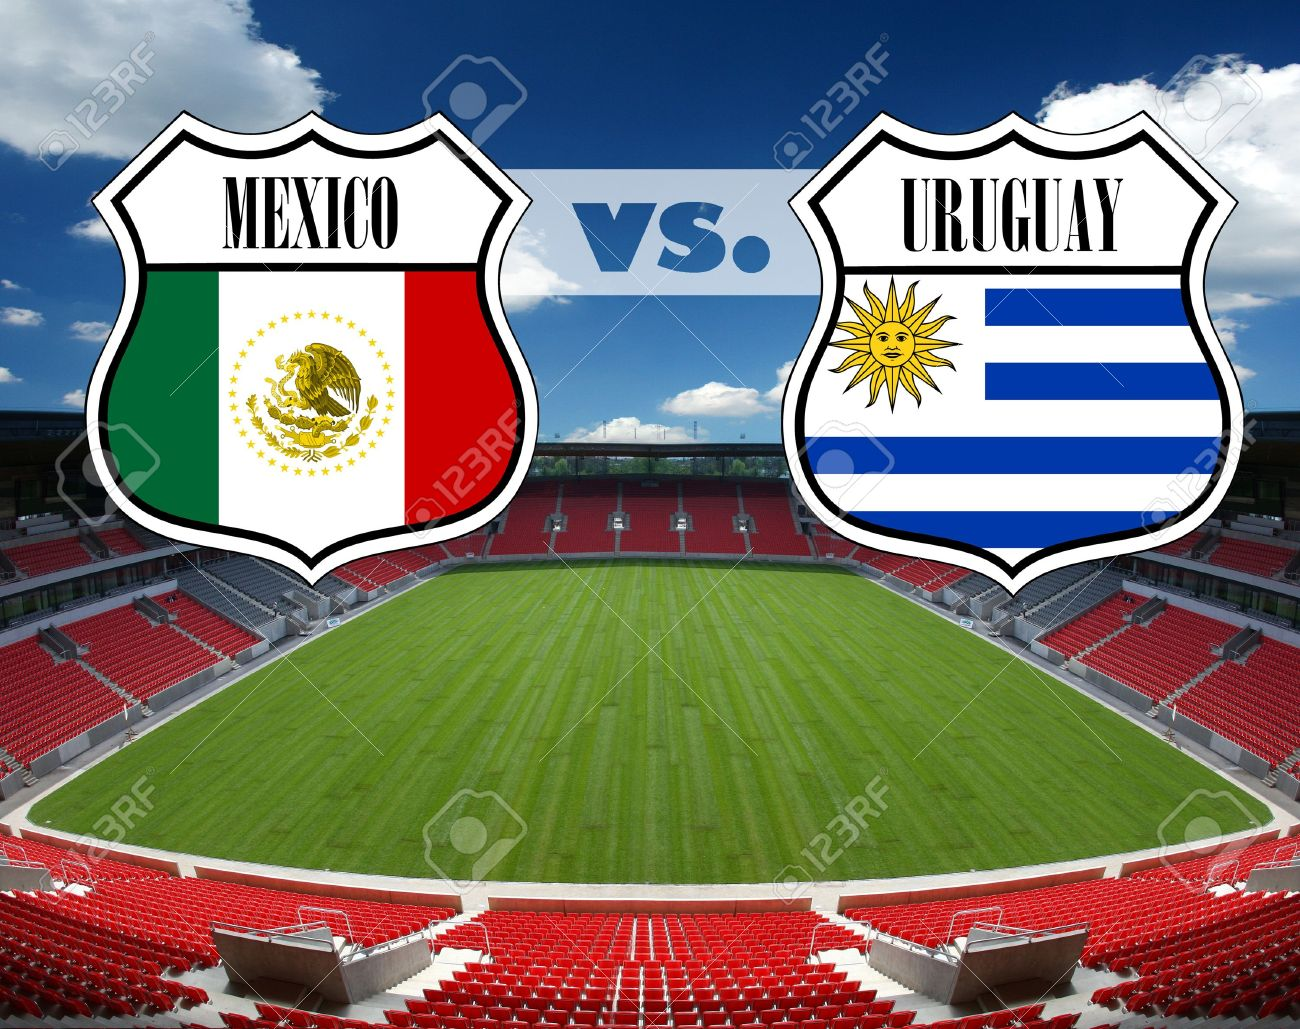 6550914-Mexico-vs-Uruguay-Stock-Photo